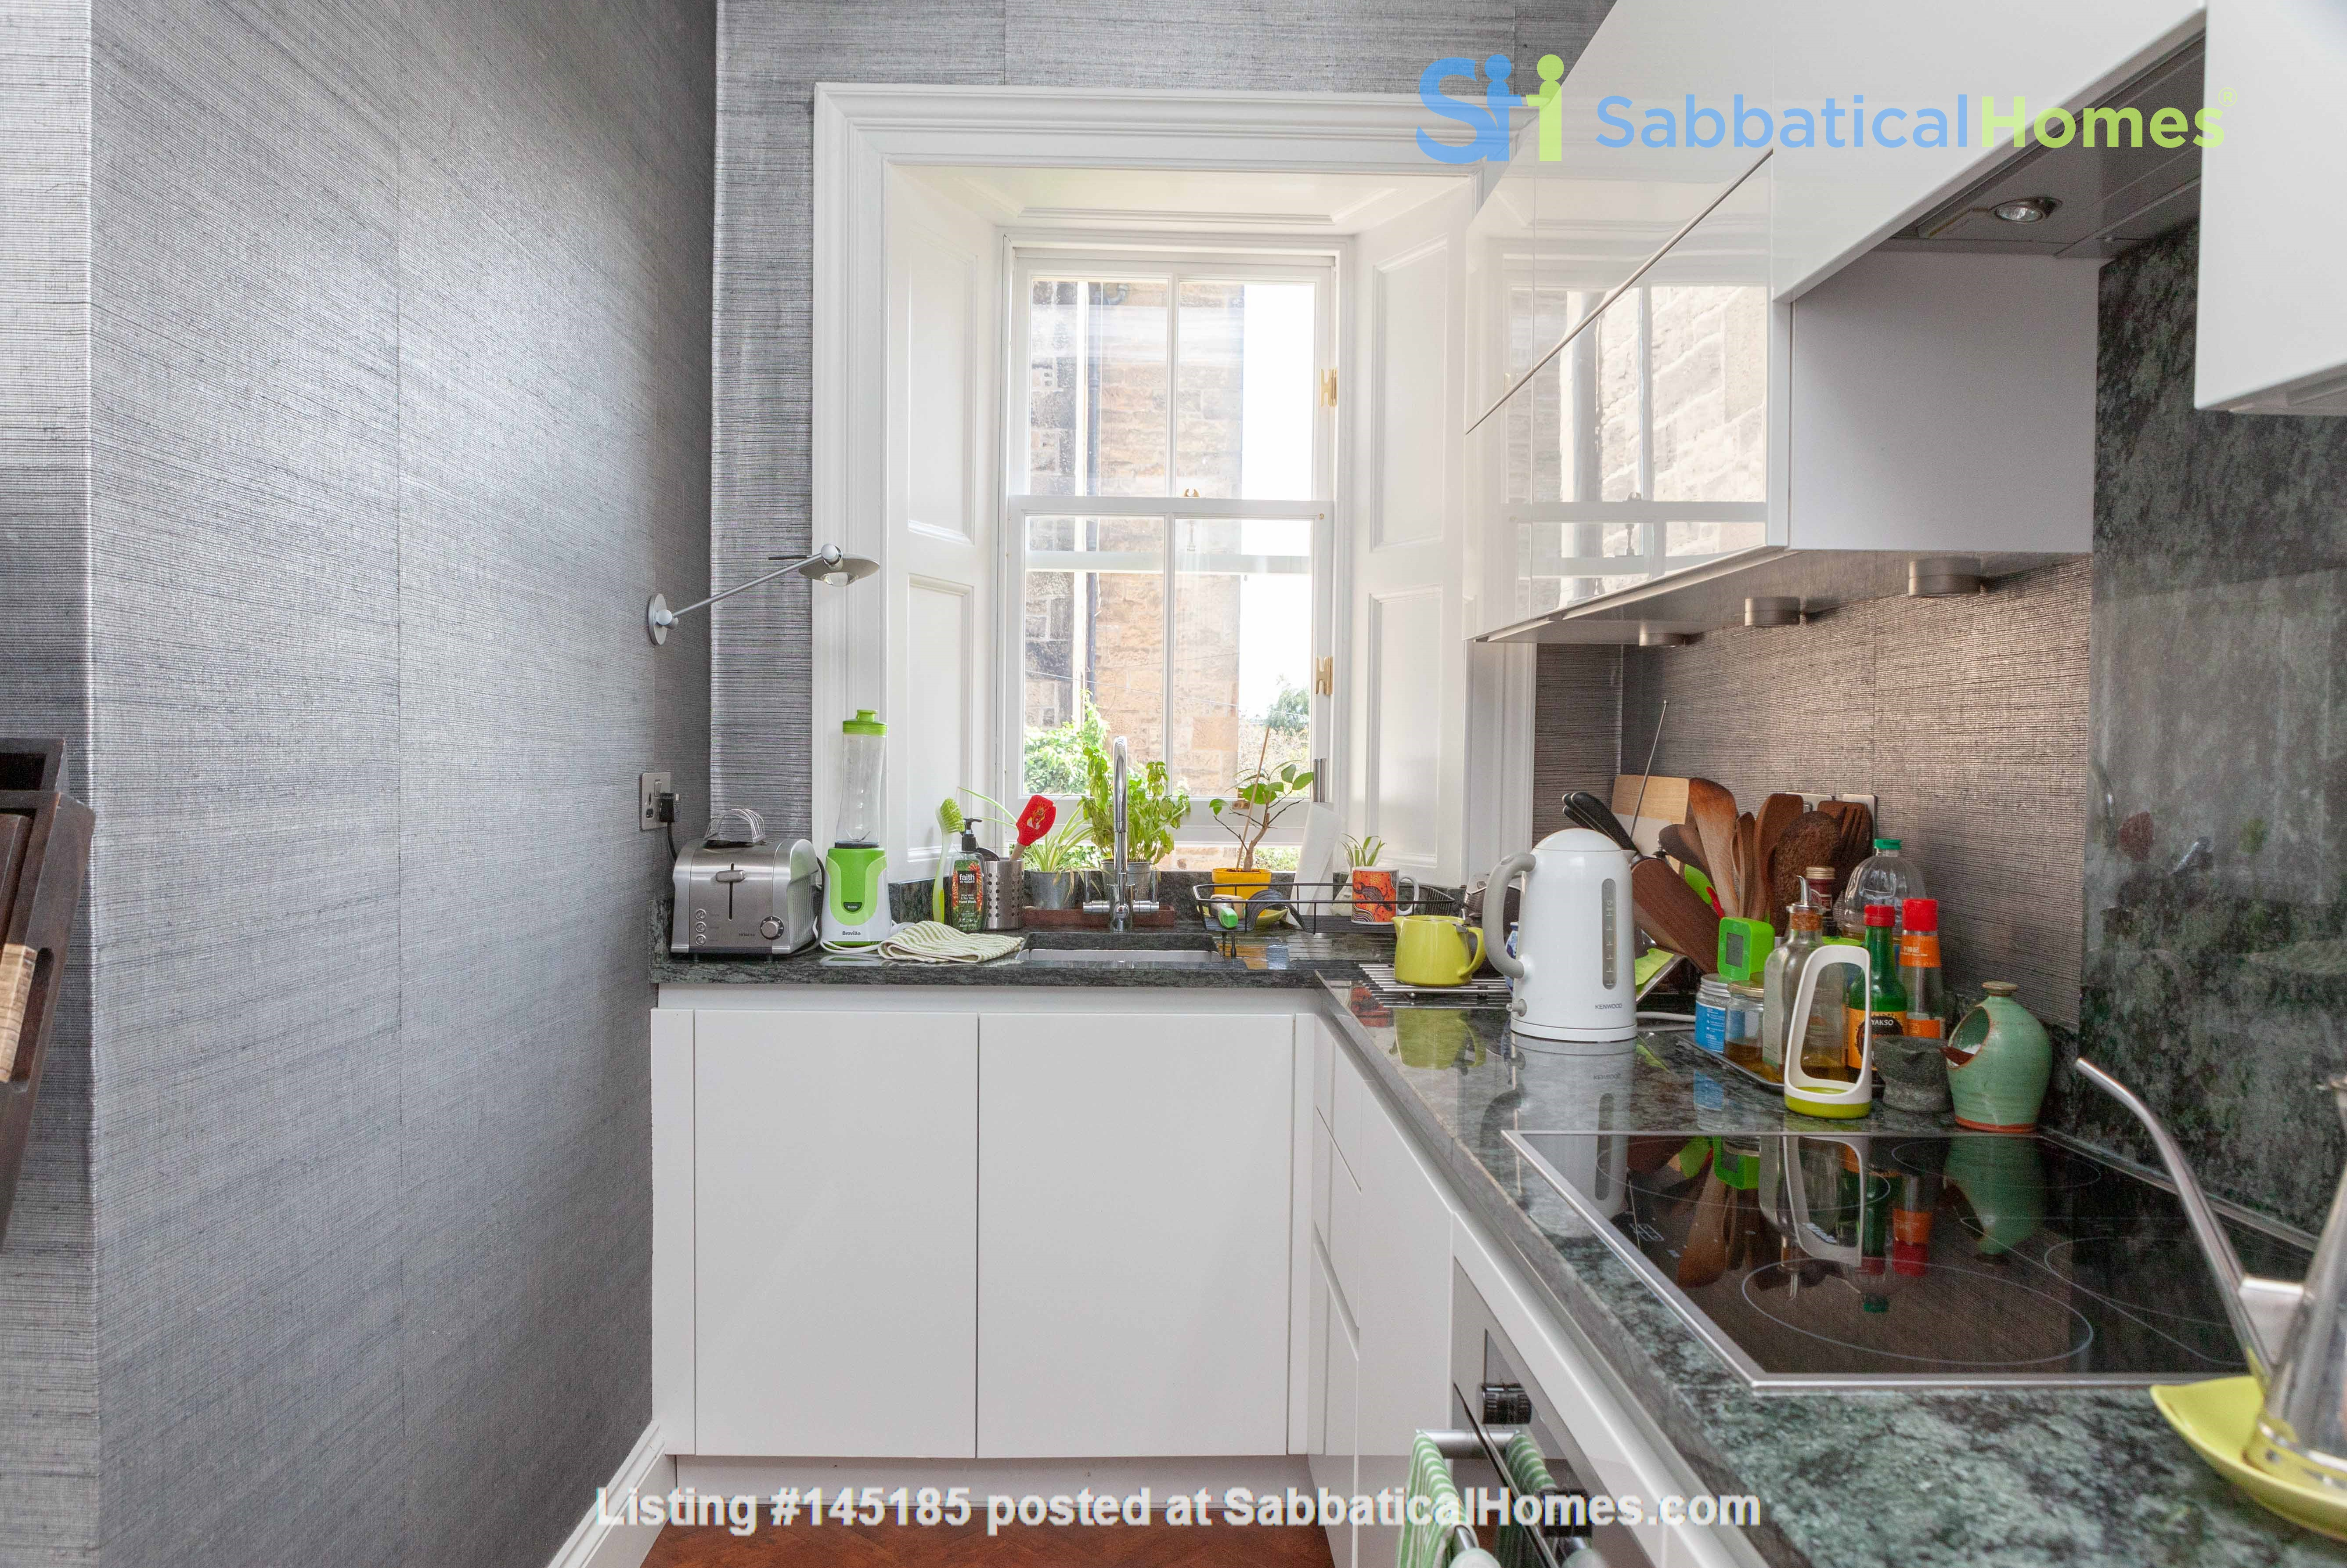 Stunning House for a fish, gardener and architectural lover. Home Rental in Edinburgh, Scotland, United Kingdom 2